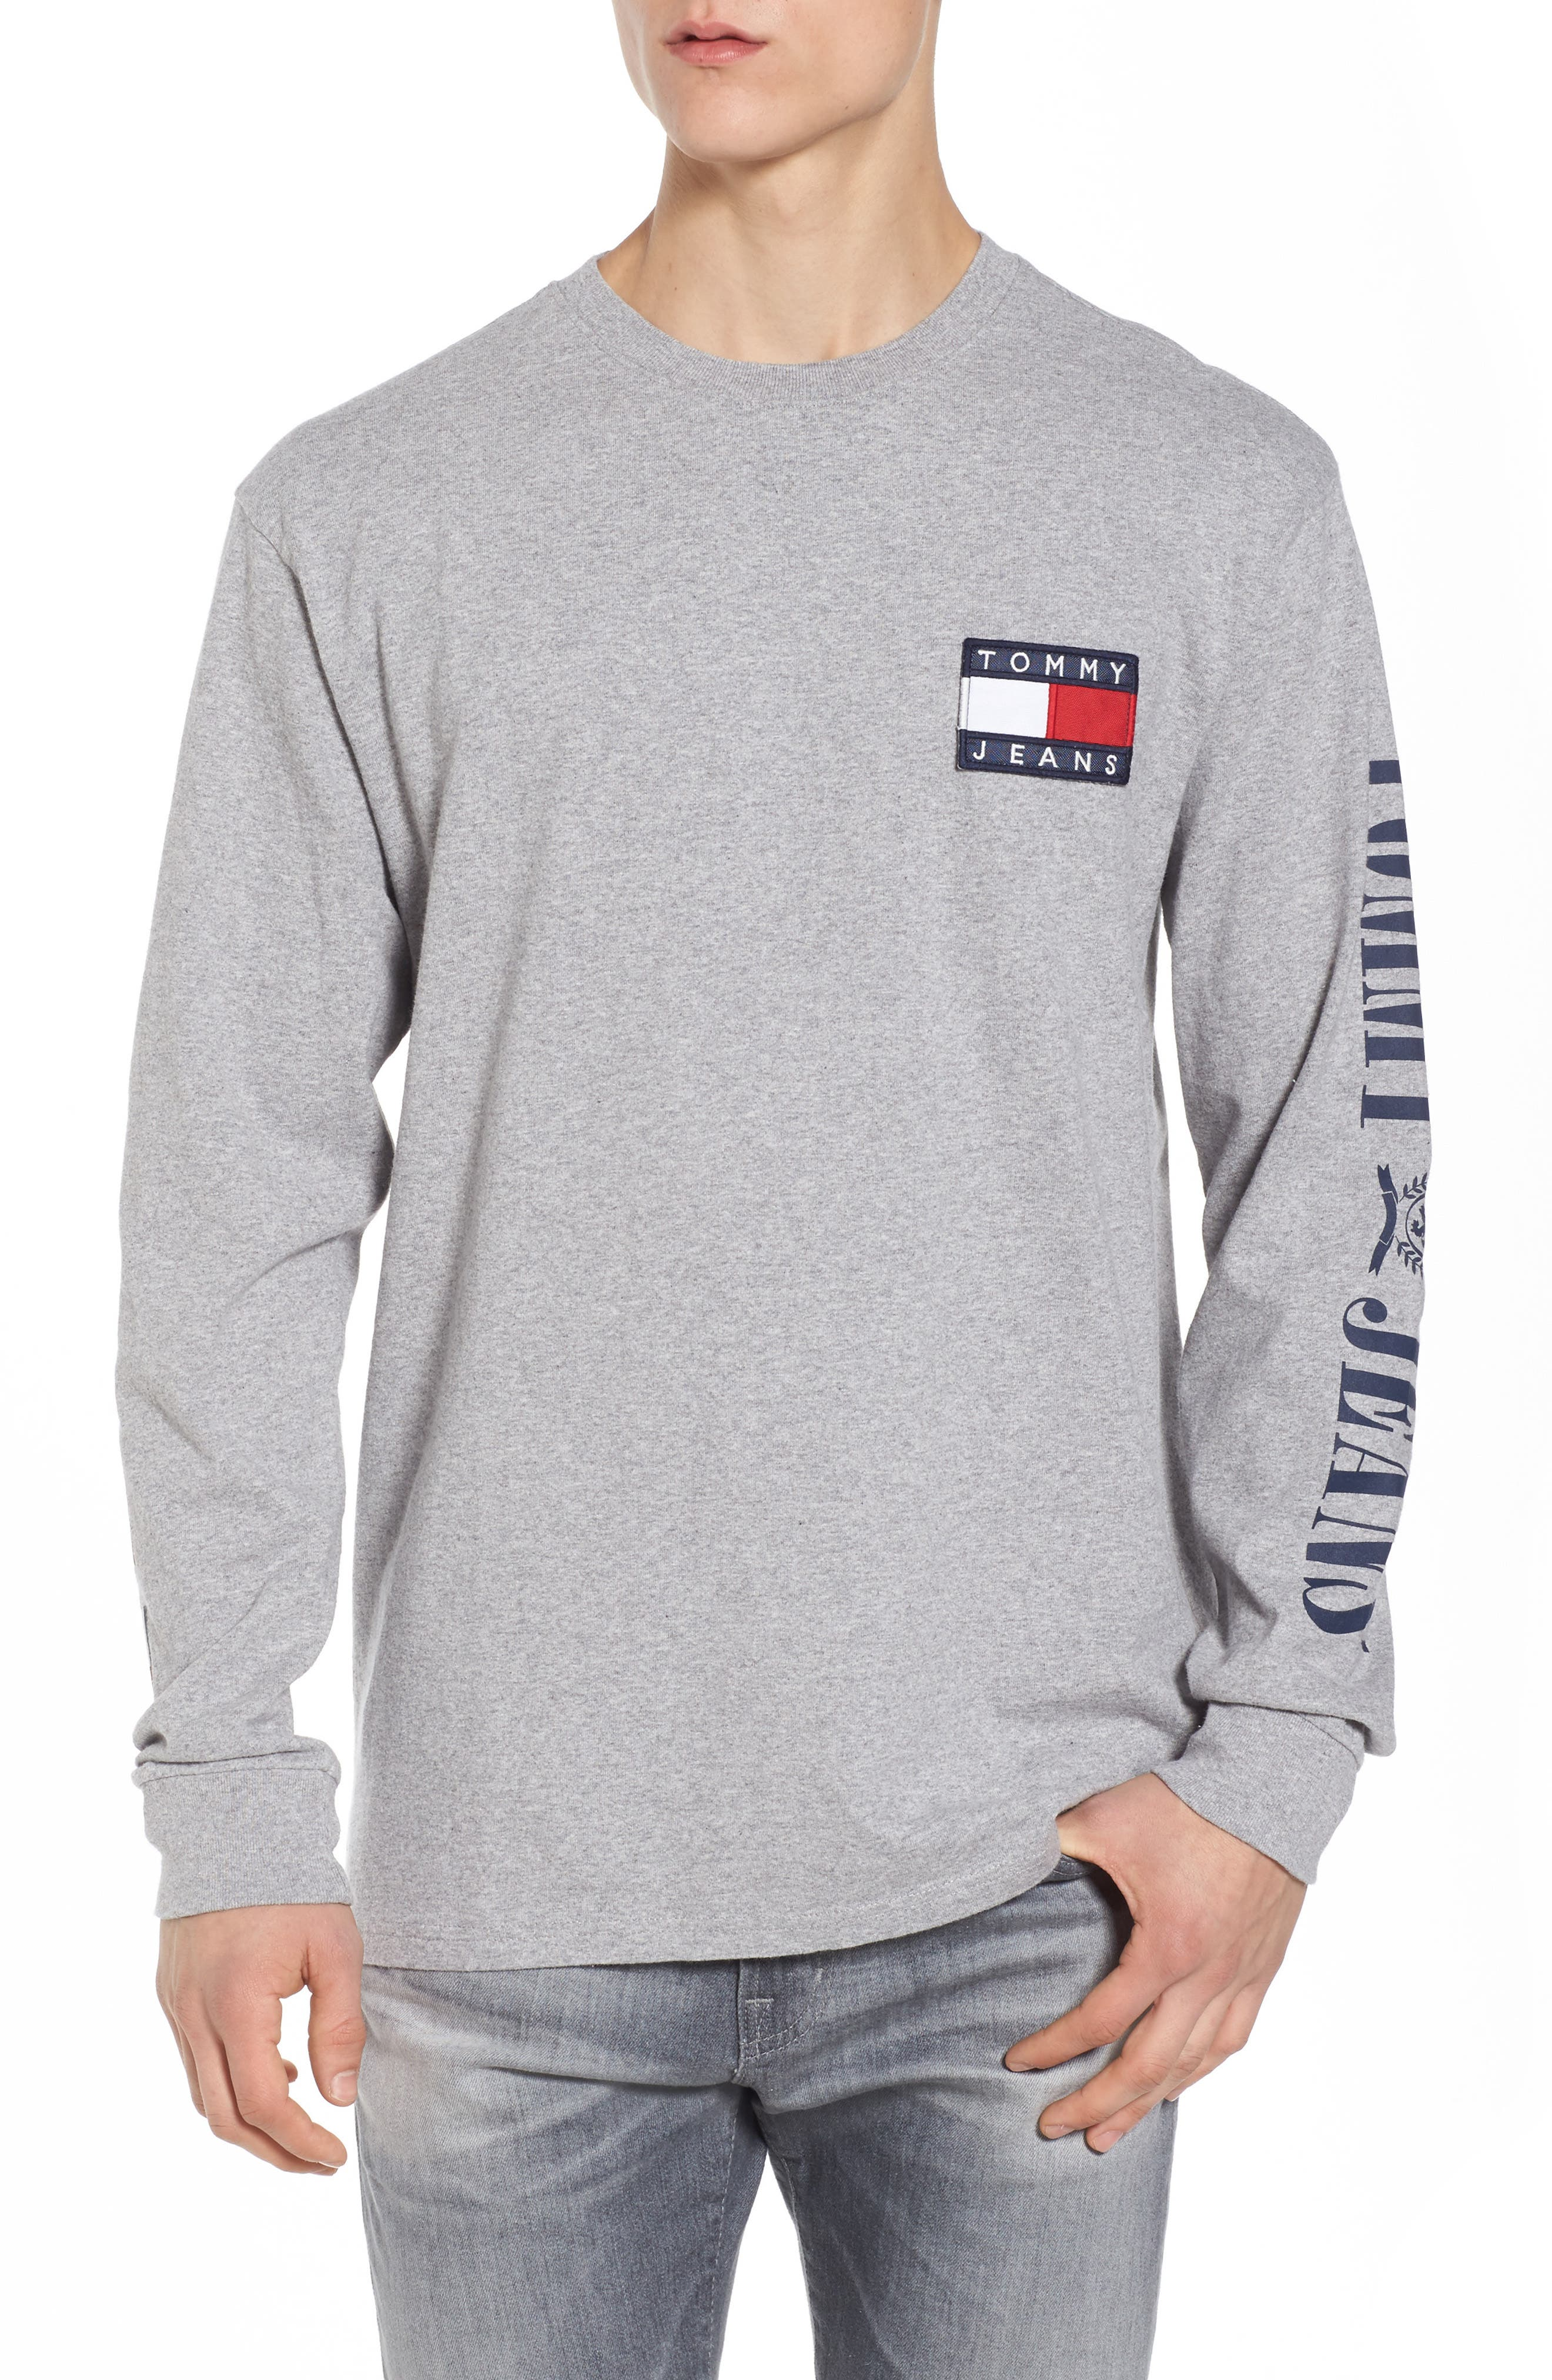 Tommy Hilfiger 90s Long Sleeve T-Shirt